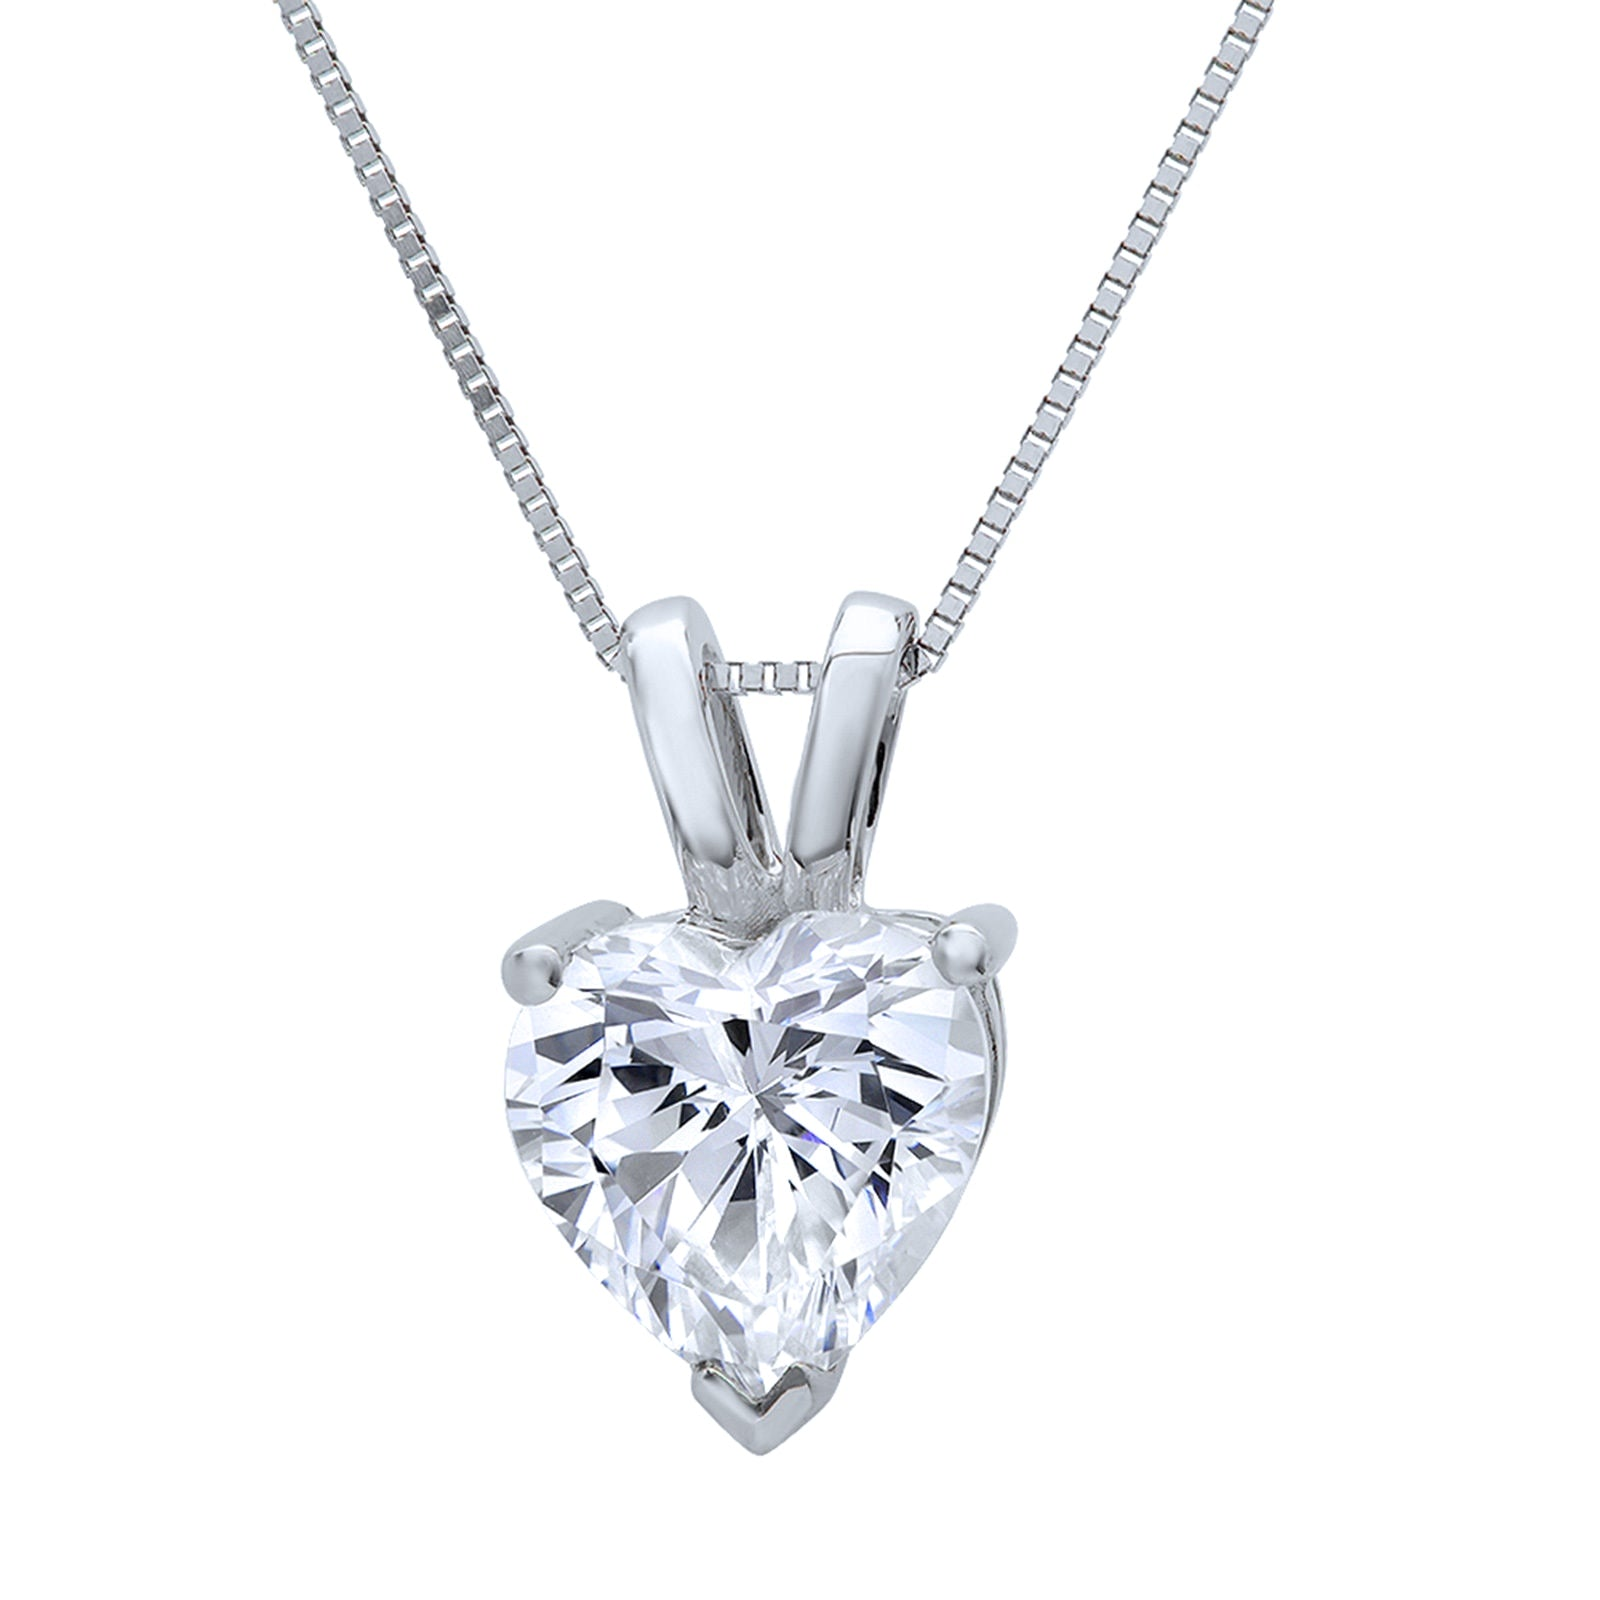 online ewa necklace pendant cluster pdp main gold at diamond john rsp com johnlewis buyewa white